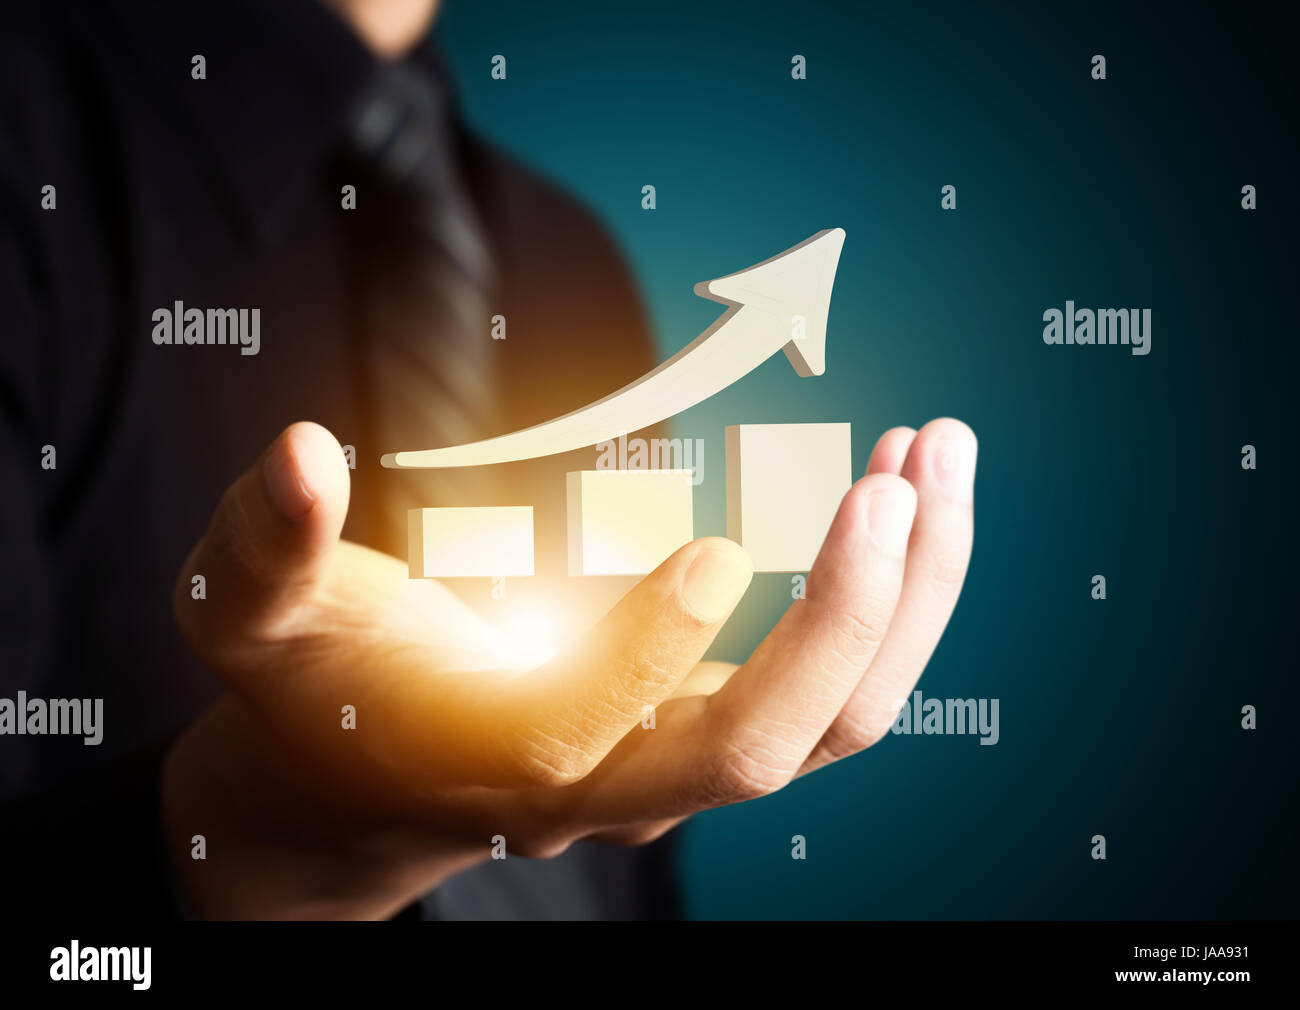 Hand holding a rising arrow, representing business growth - Stock Image